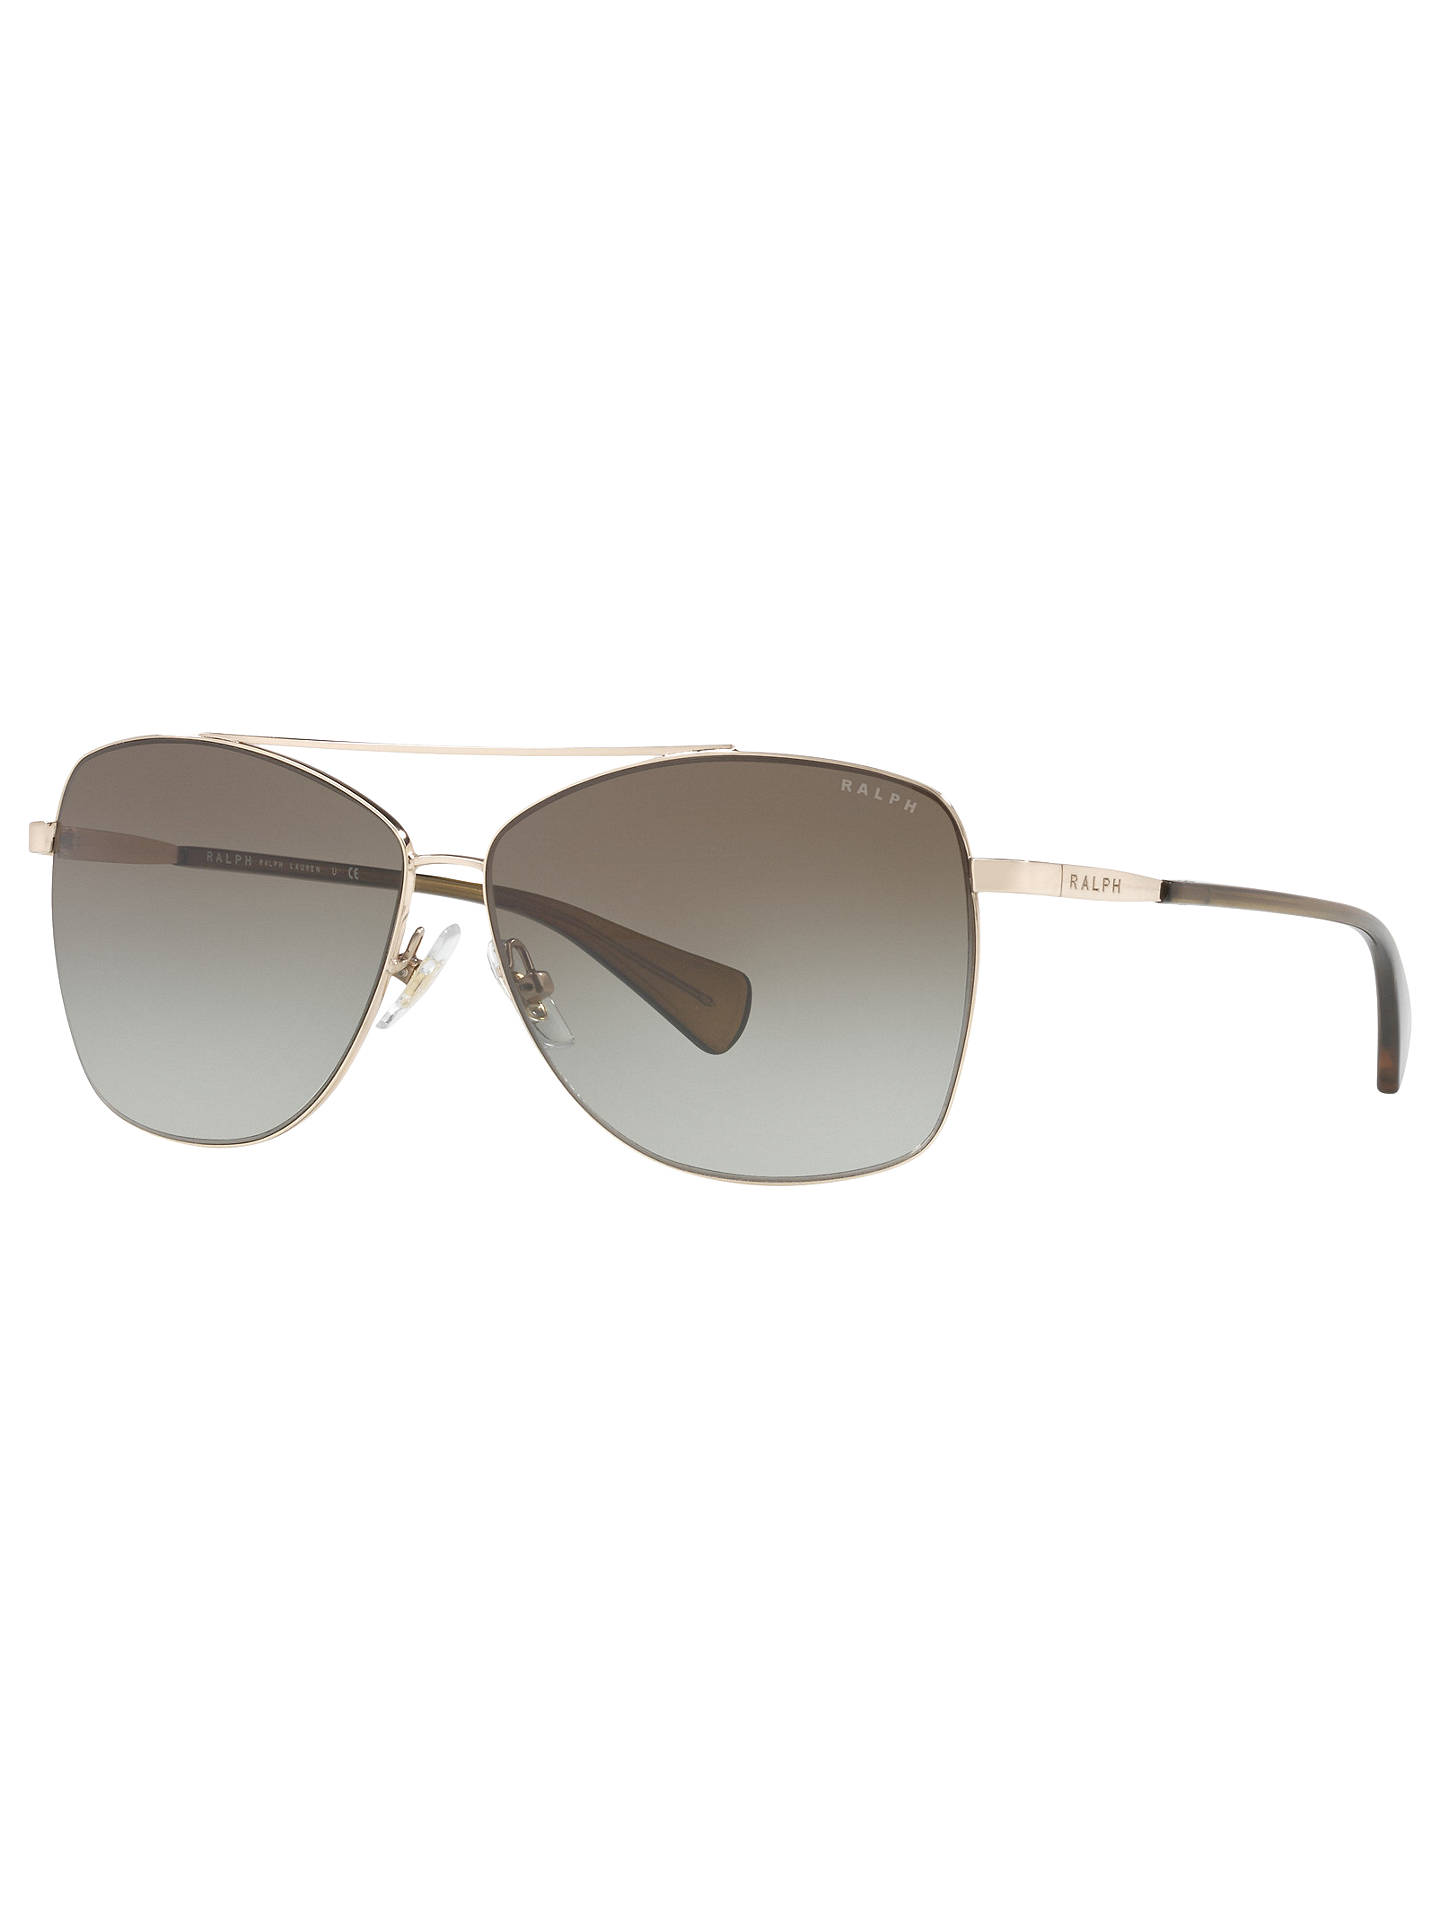 90abab1eaa5f Buy Ralph by Ralph Lauren RA4121 Aviator Sunglasses, Silver/Brown Gradient  Online at johnlewis ...